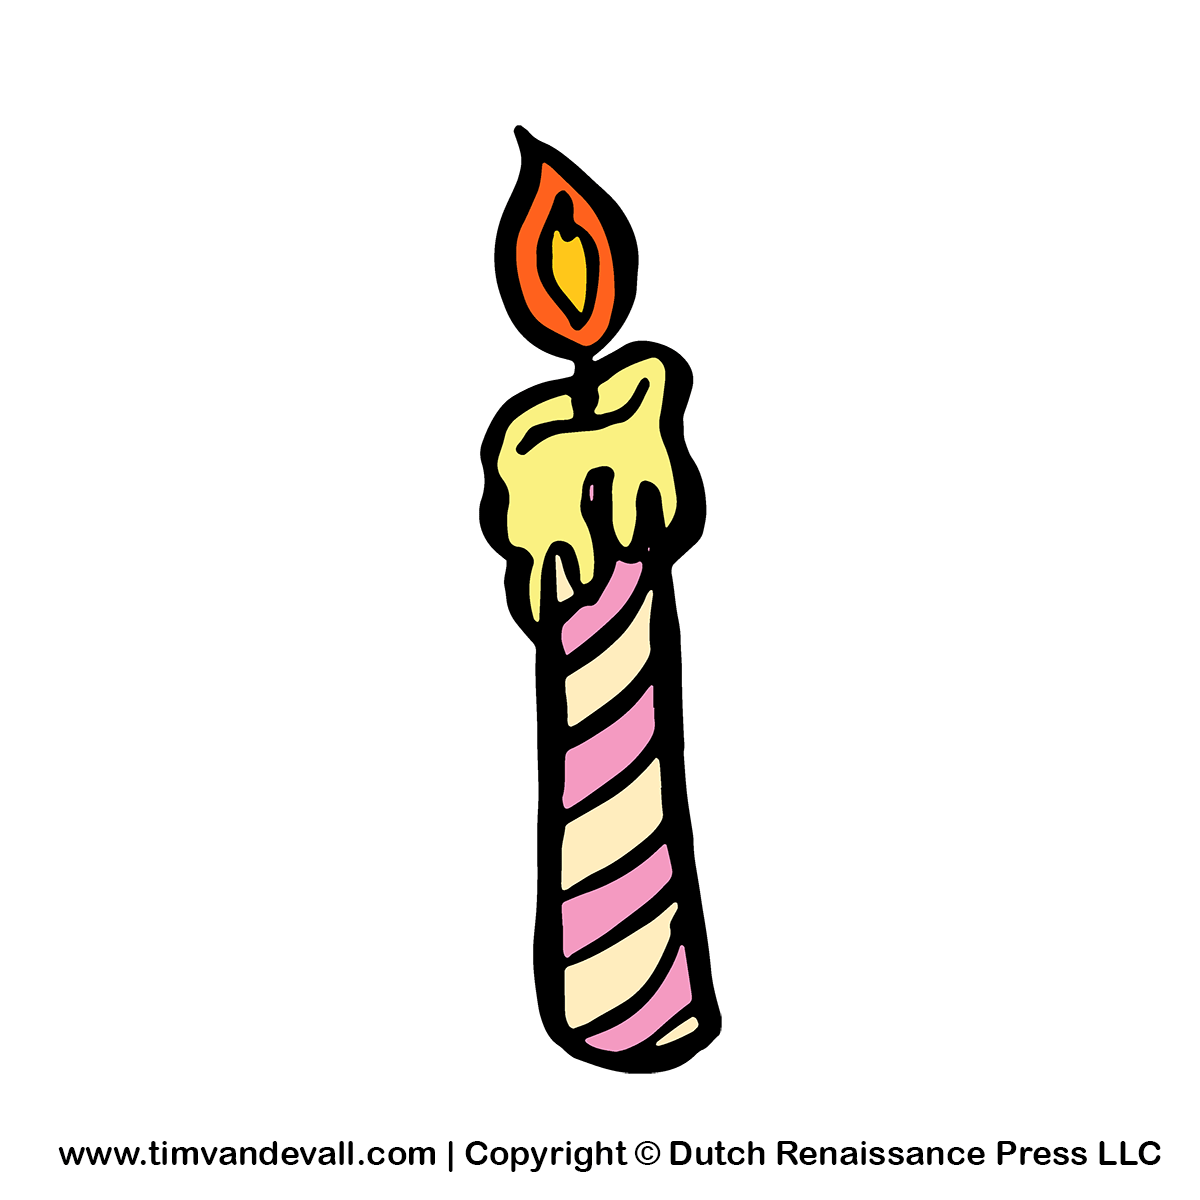 Kid free party for. Birthday candle clipart